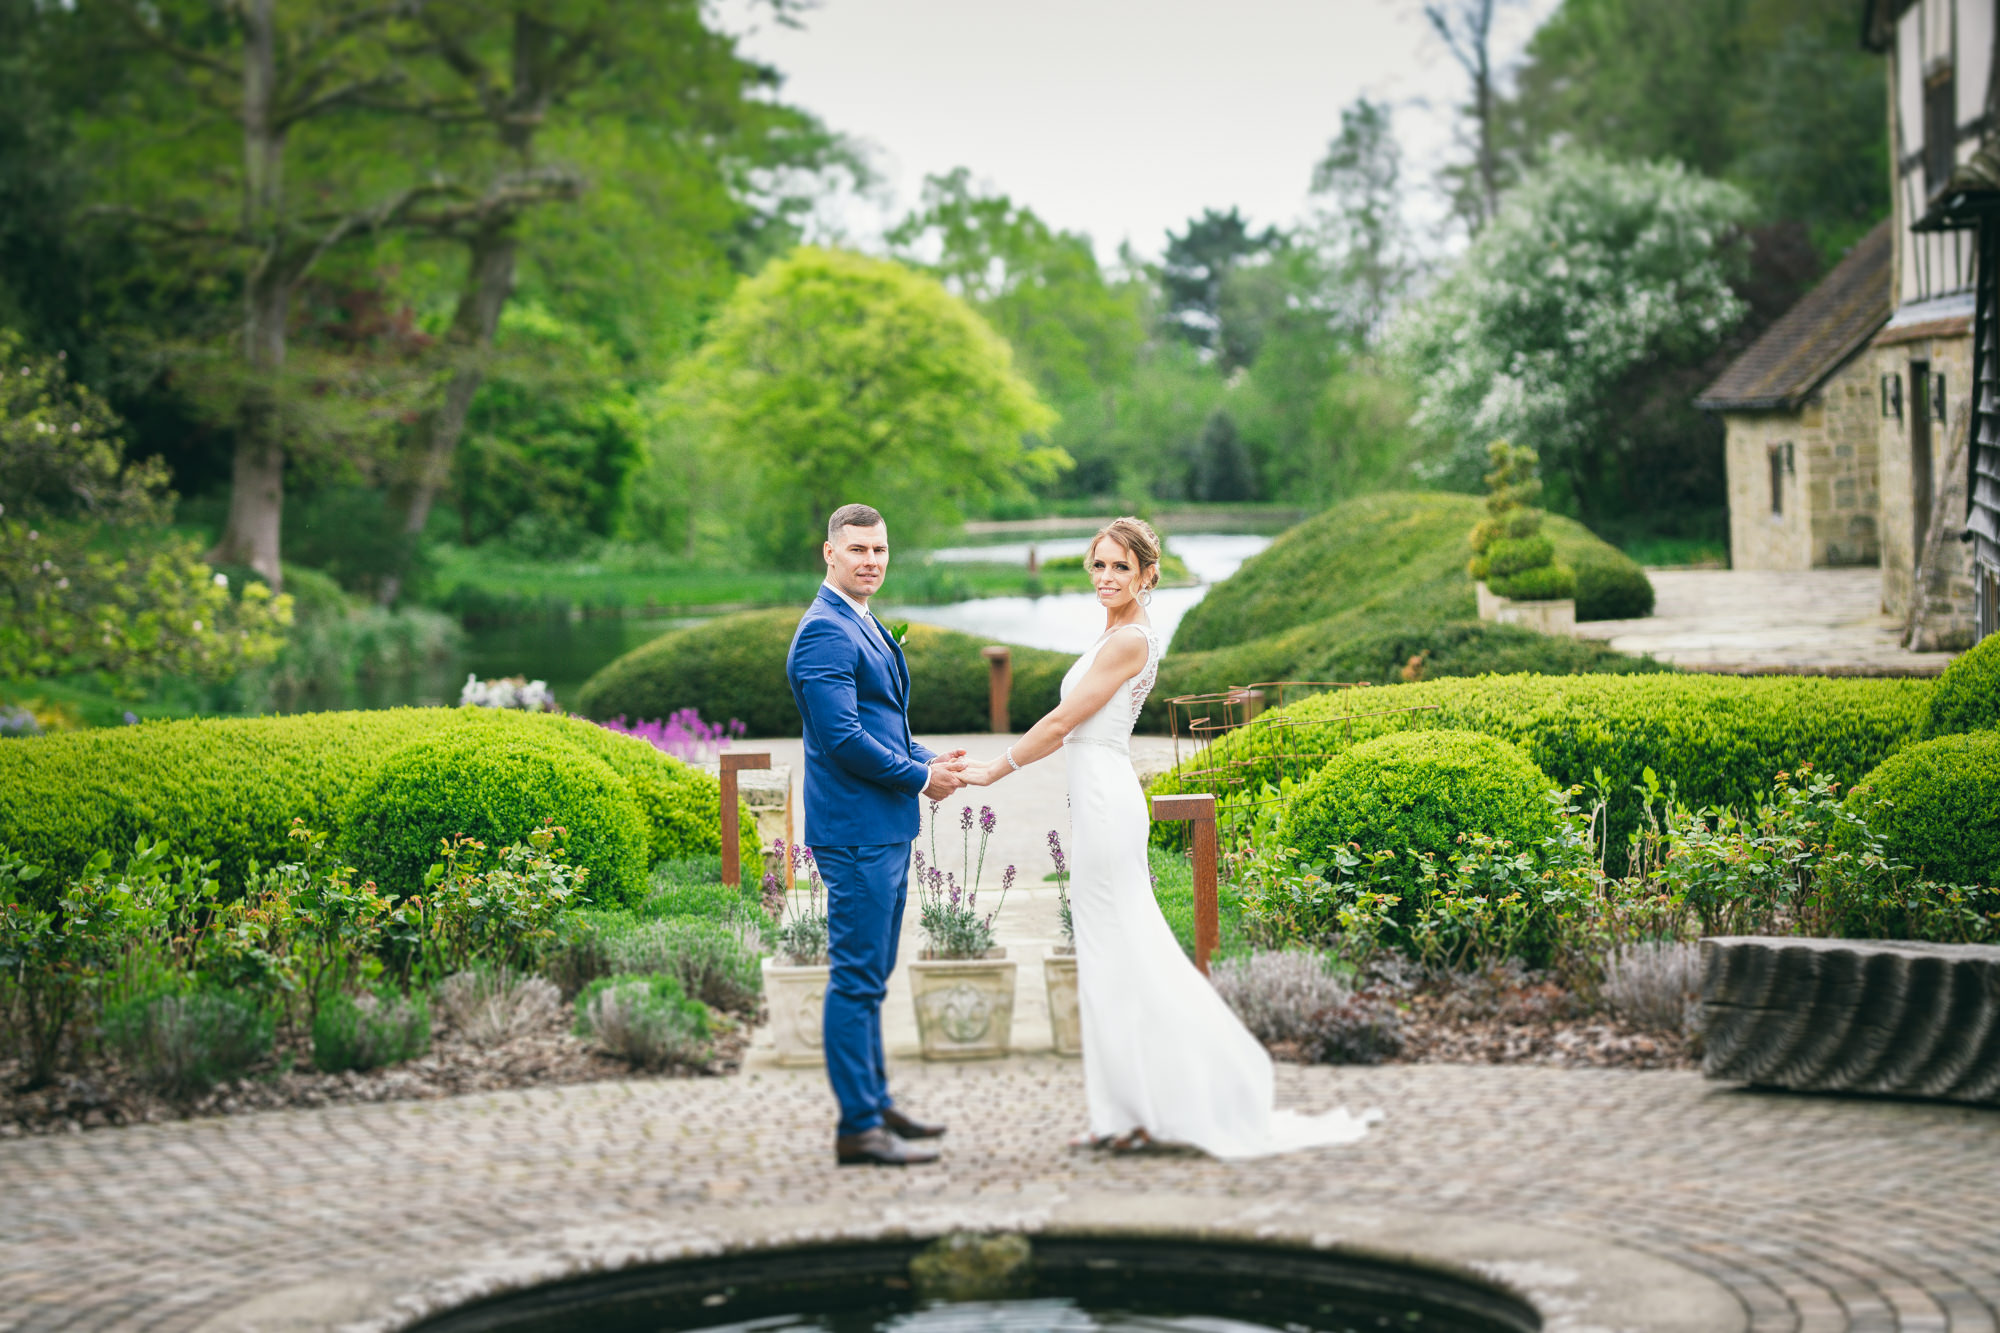 Bride and Groom Rustic Barn Wedding Photography in Nyetimber Sussex